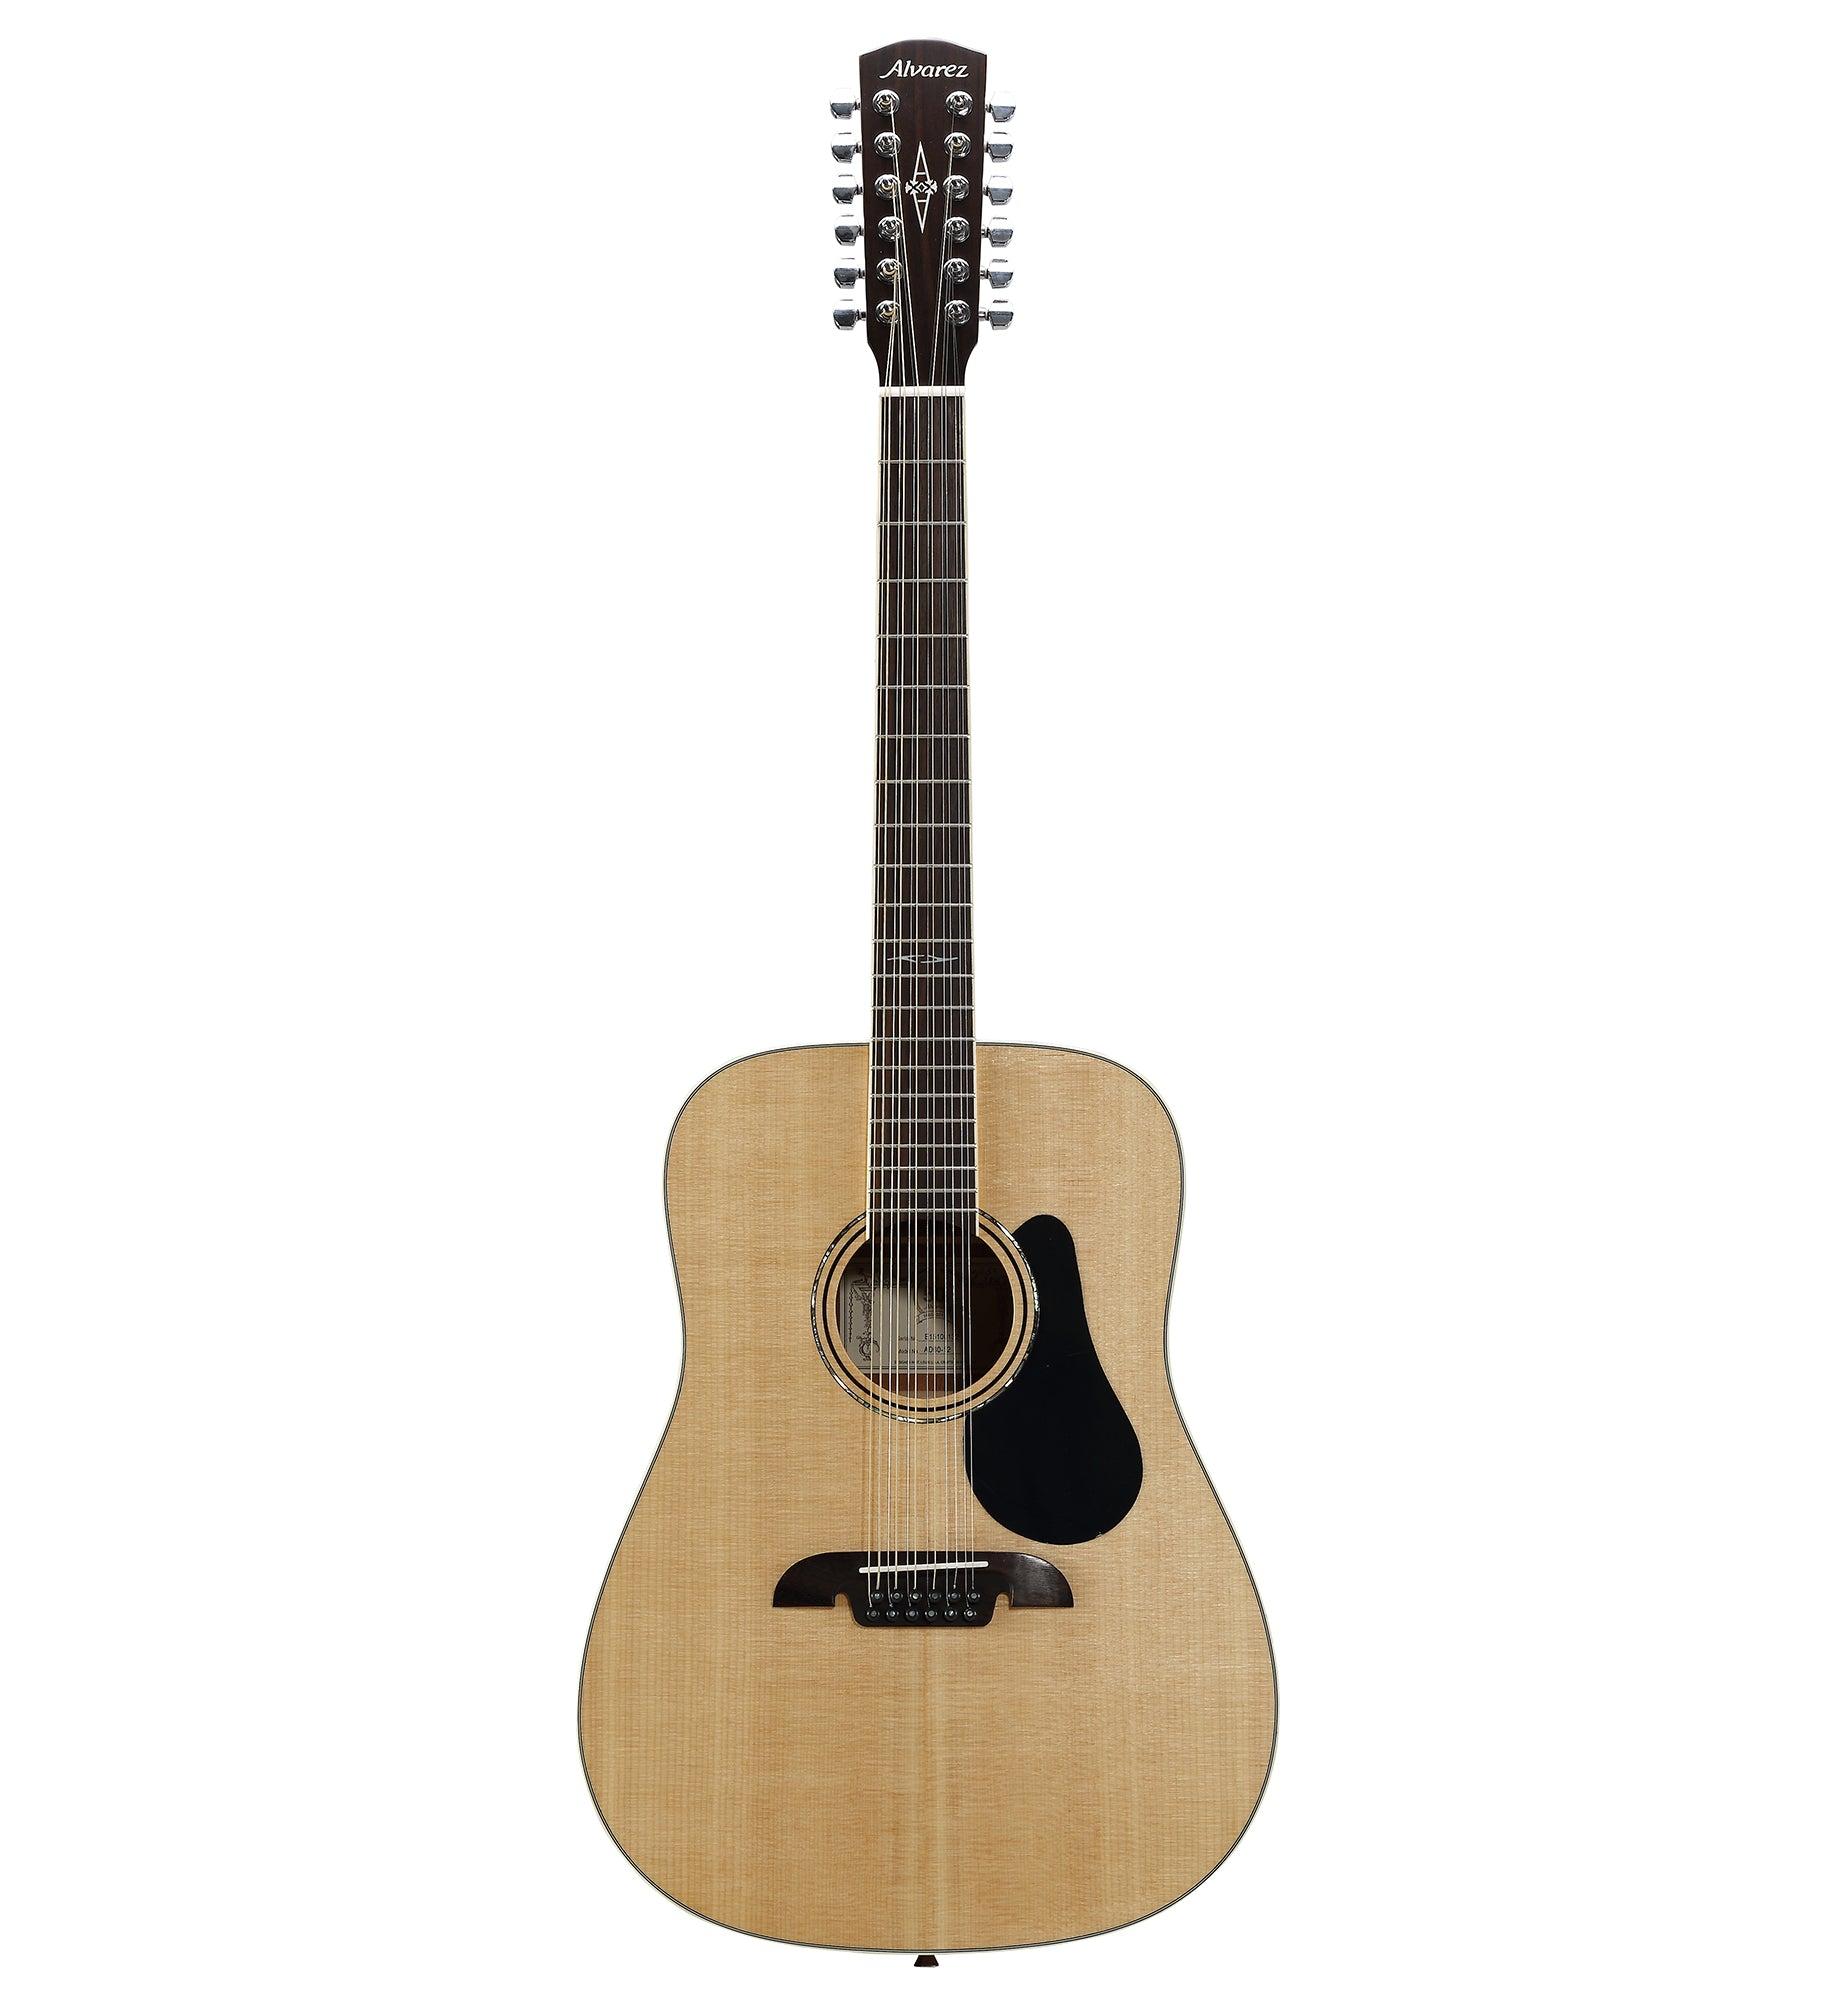 Alvarez Artist Series AD60-12 Acoustic Dreadnought 12-String Guitar